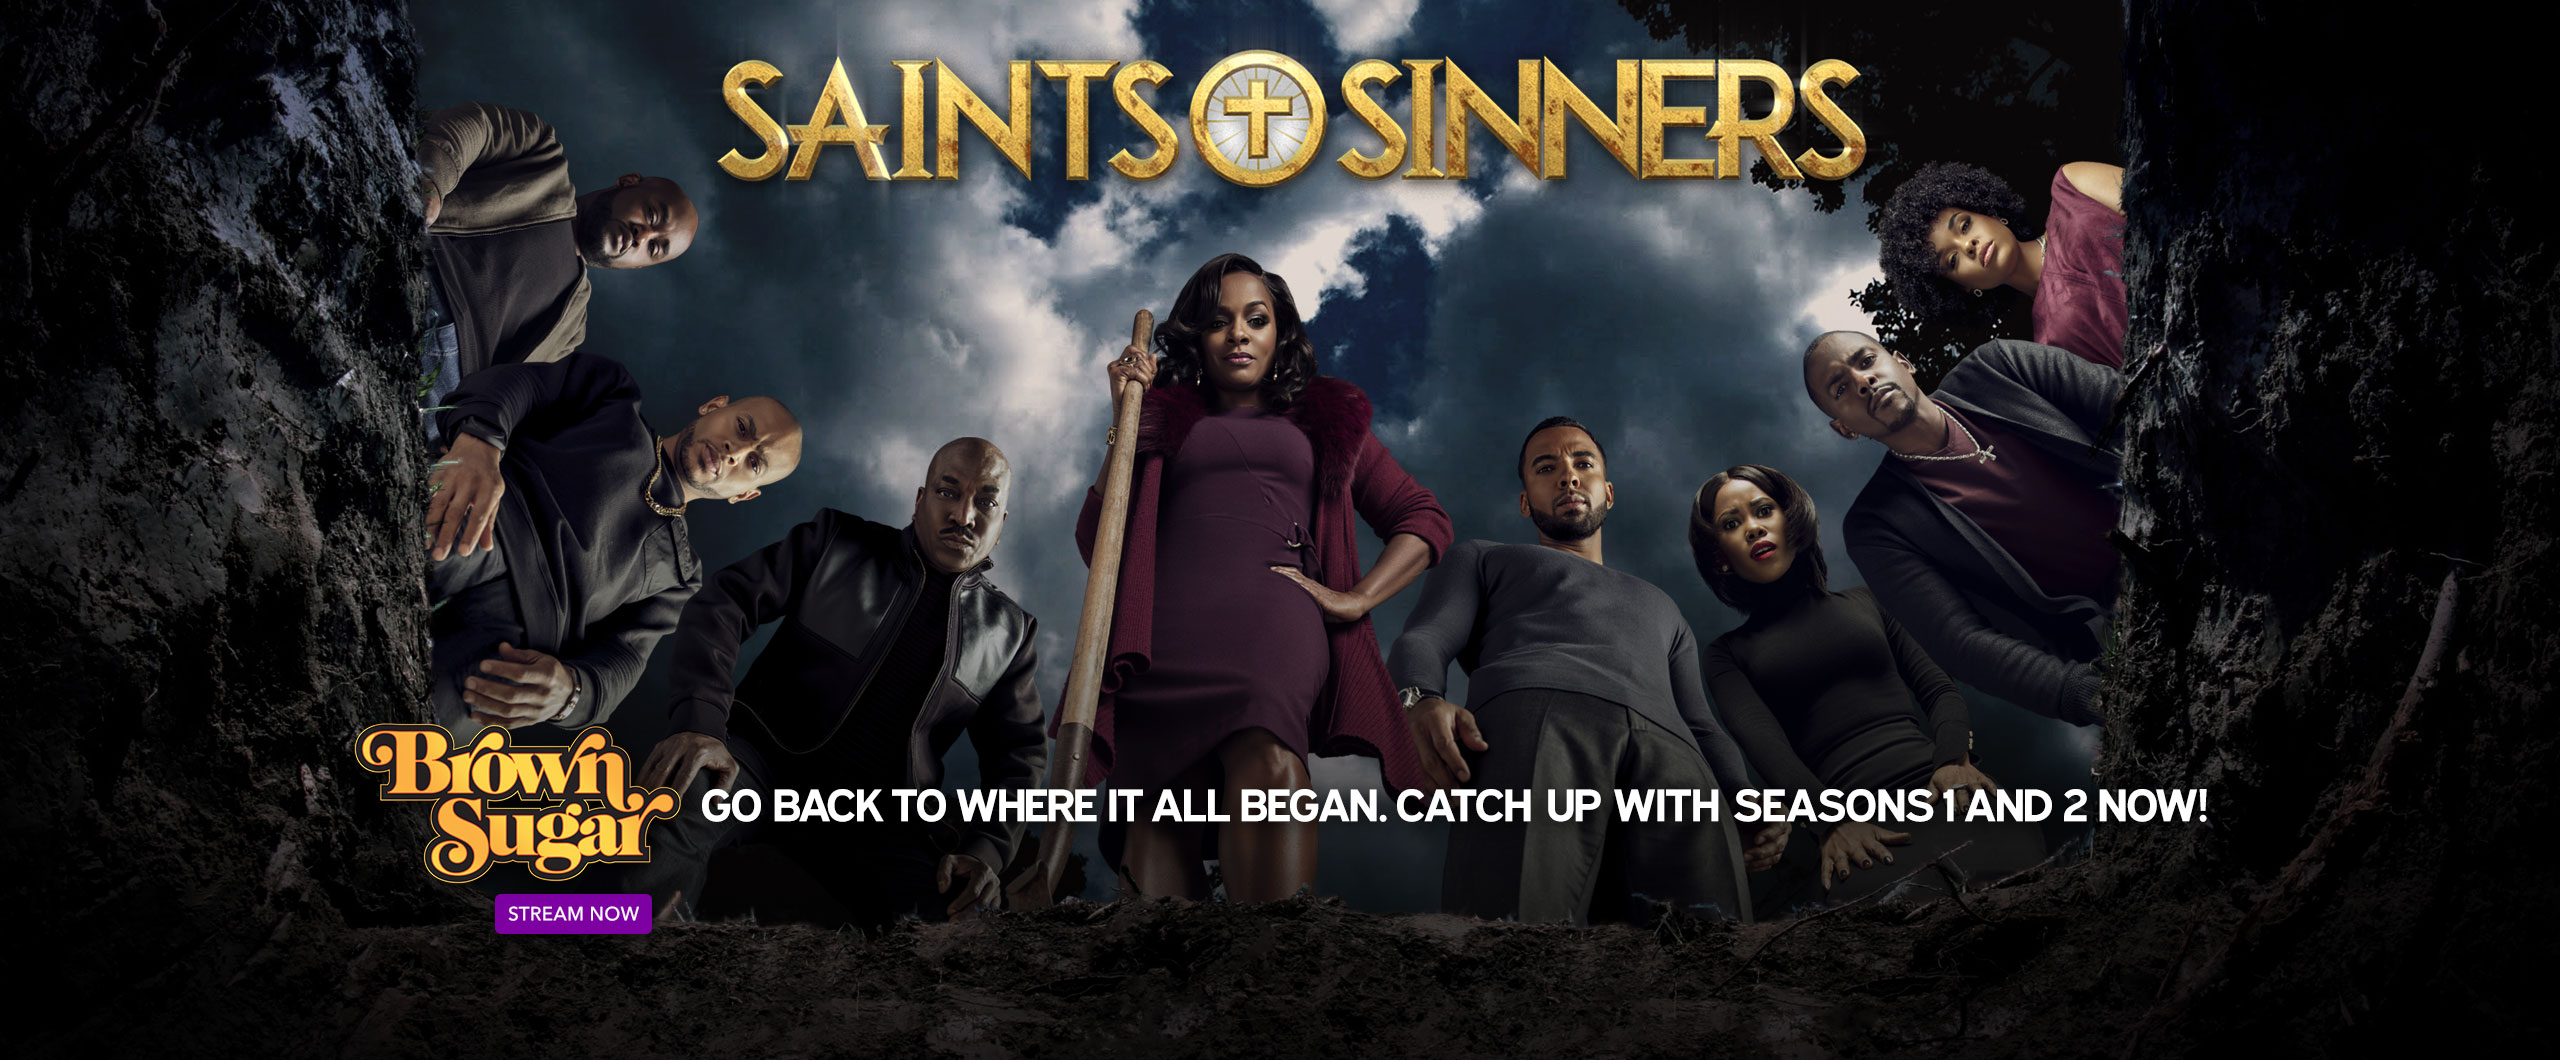 Brown Sugar: Saints & Sinners Stream